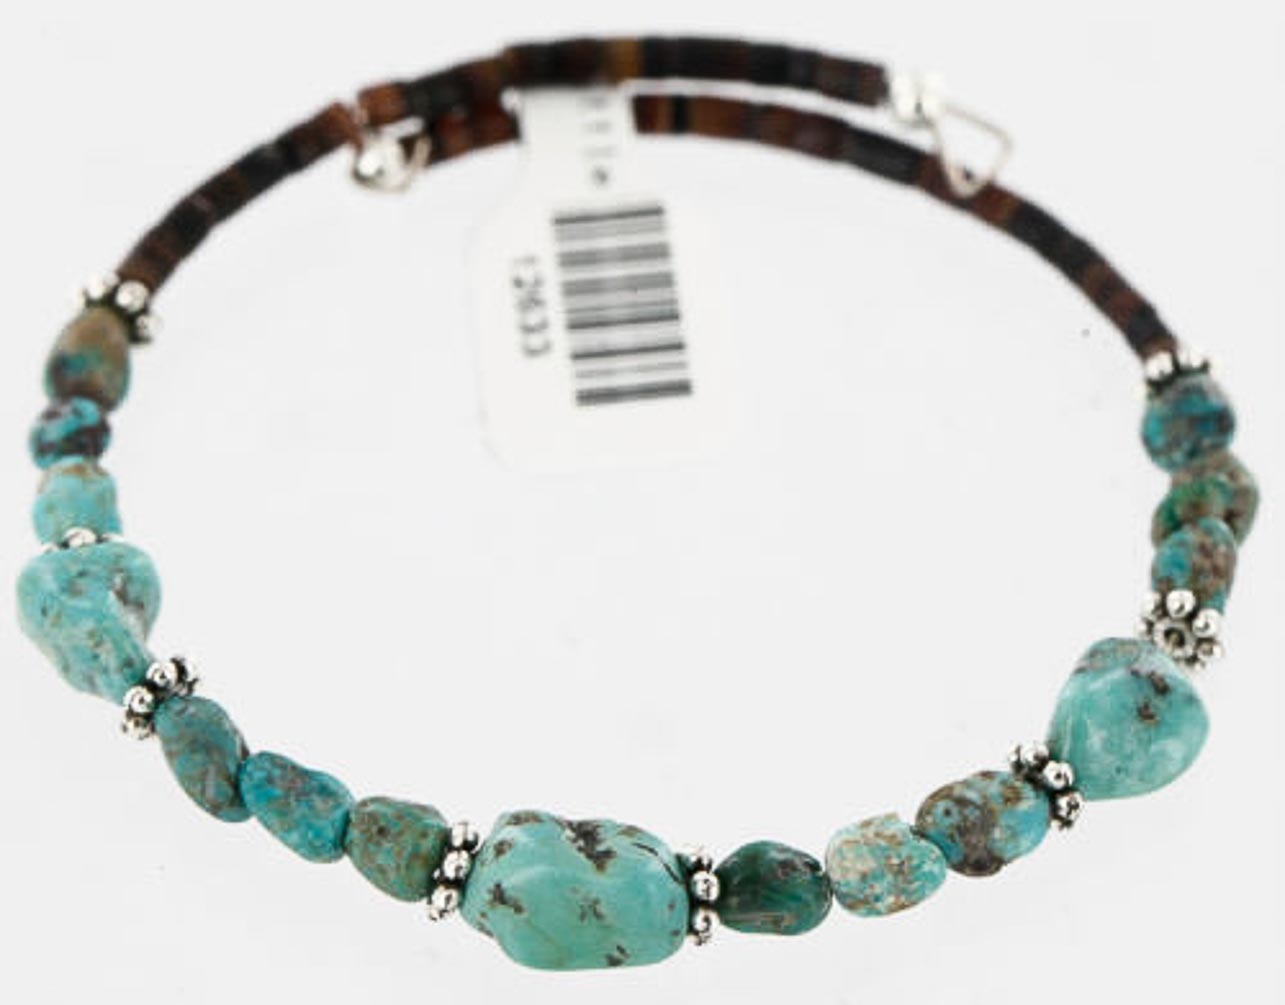 80 Retail Tag Authentic Made by Charlene Little Navajo Navajo Turquoise Native American WRAP Bracelet by